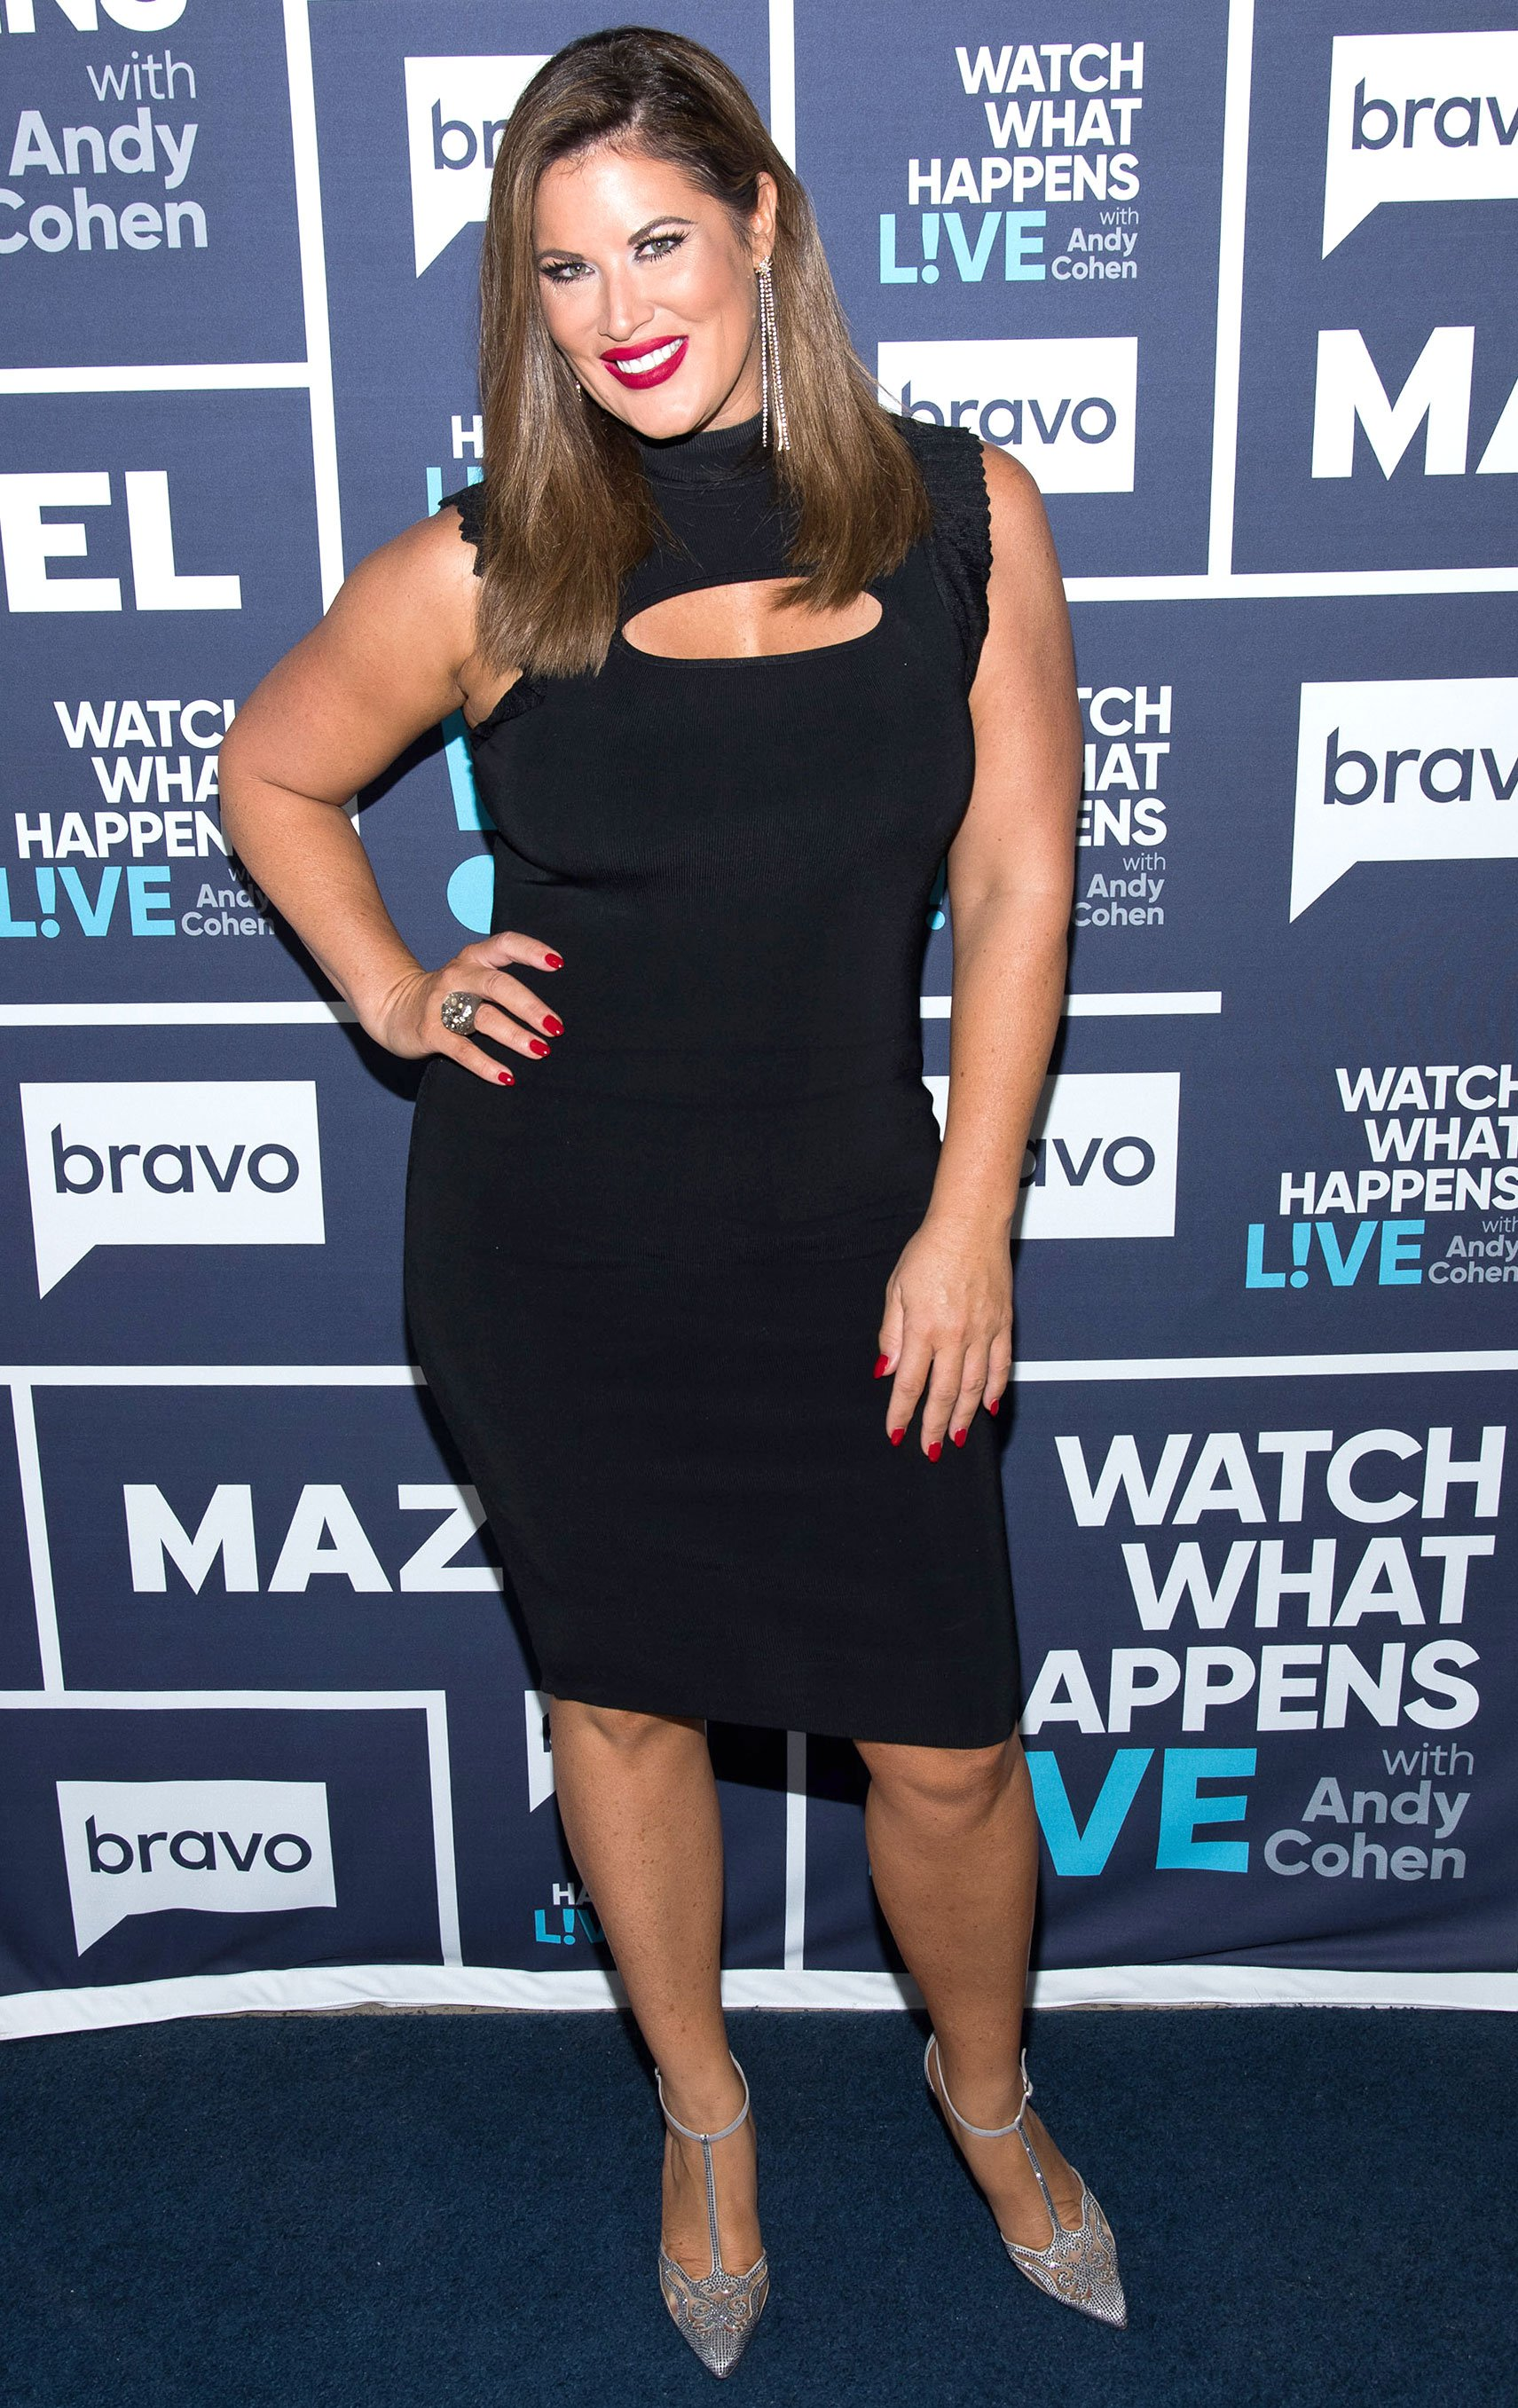 RHOC Star Emily Simpson Claps Back At Body Shamers: 'It's